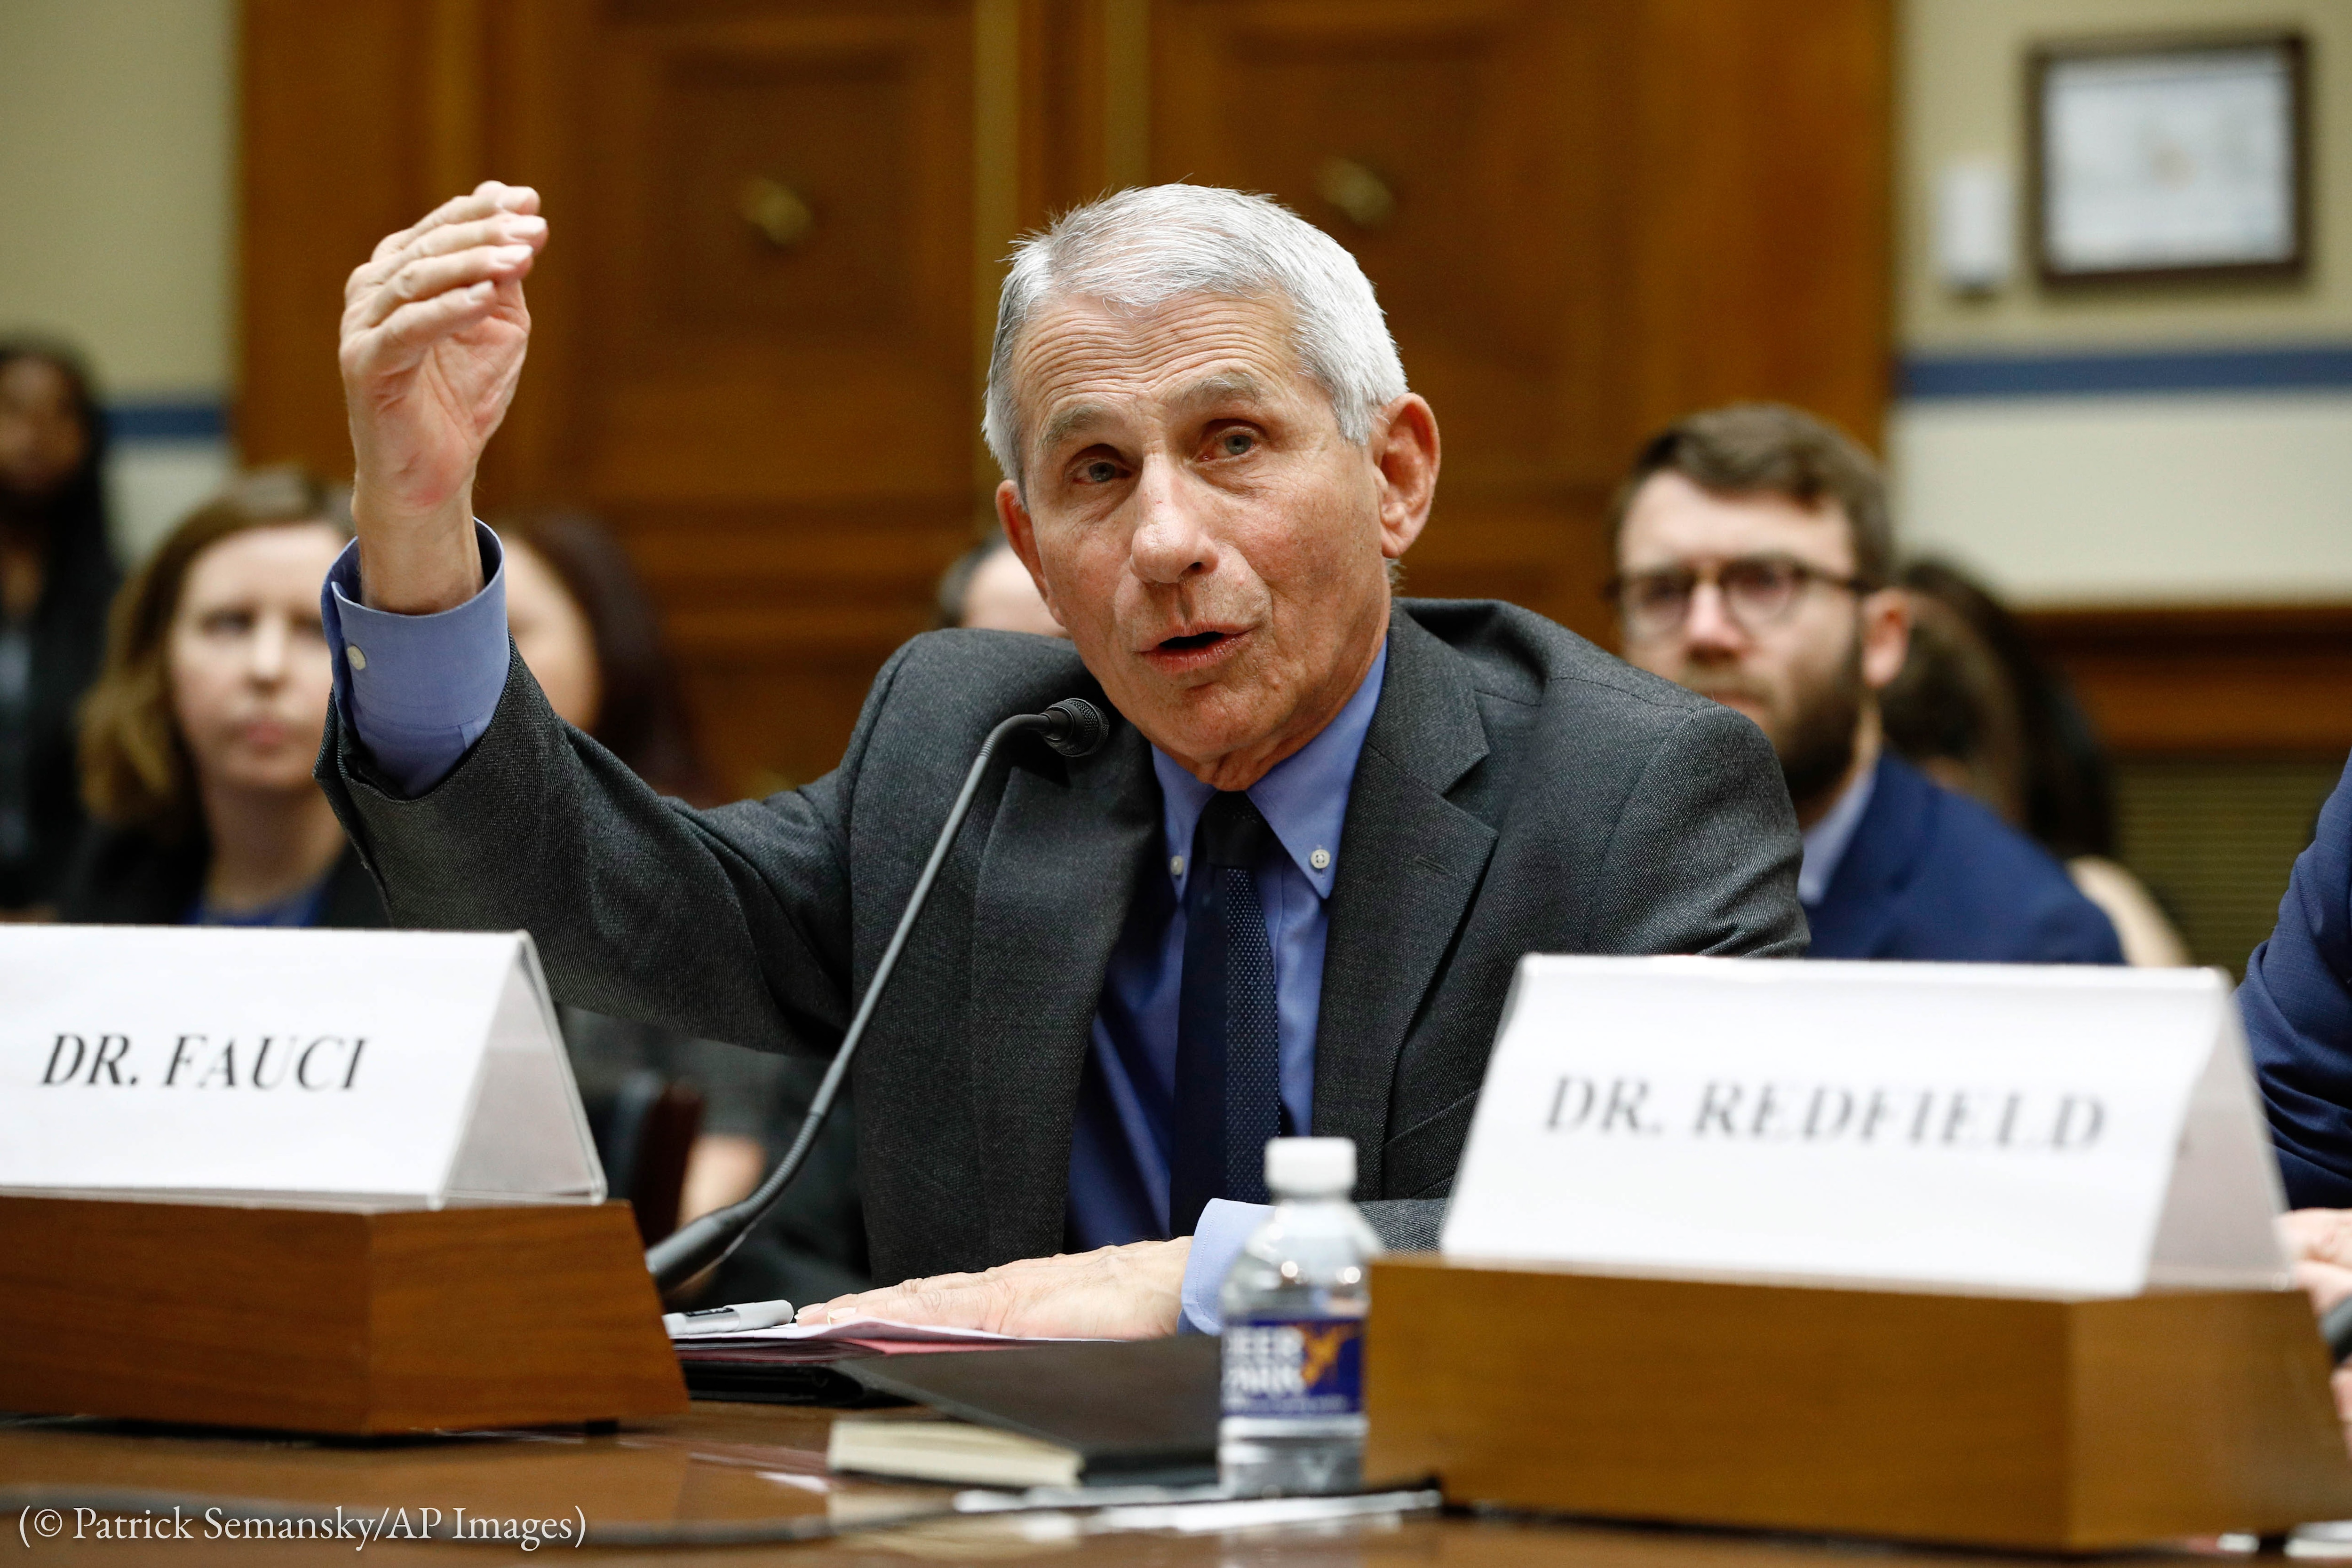 Anthony Fauci with arm raised sitting at table (© Patrick Semansky/AP Images)